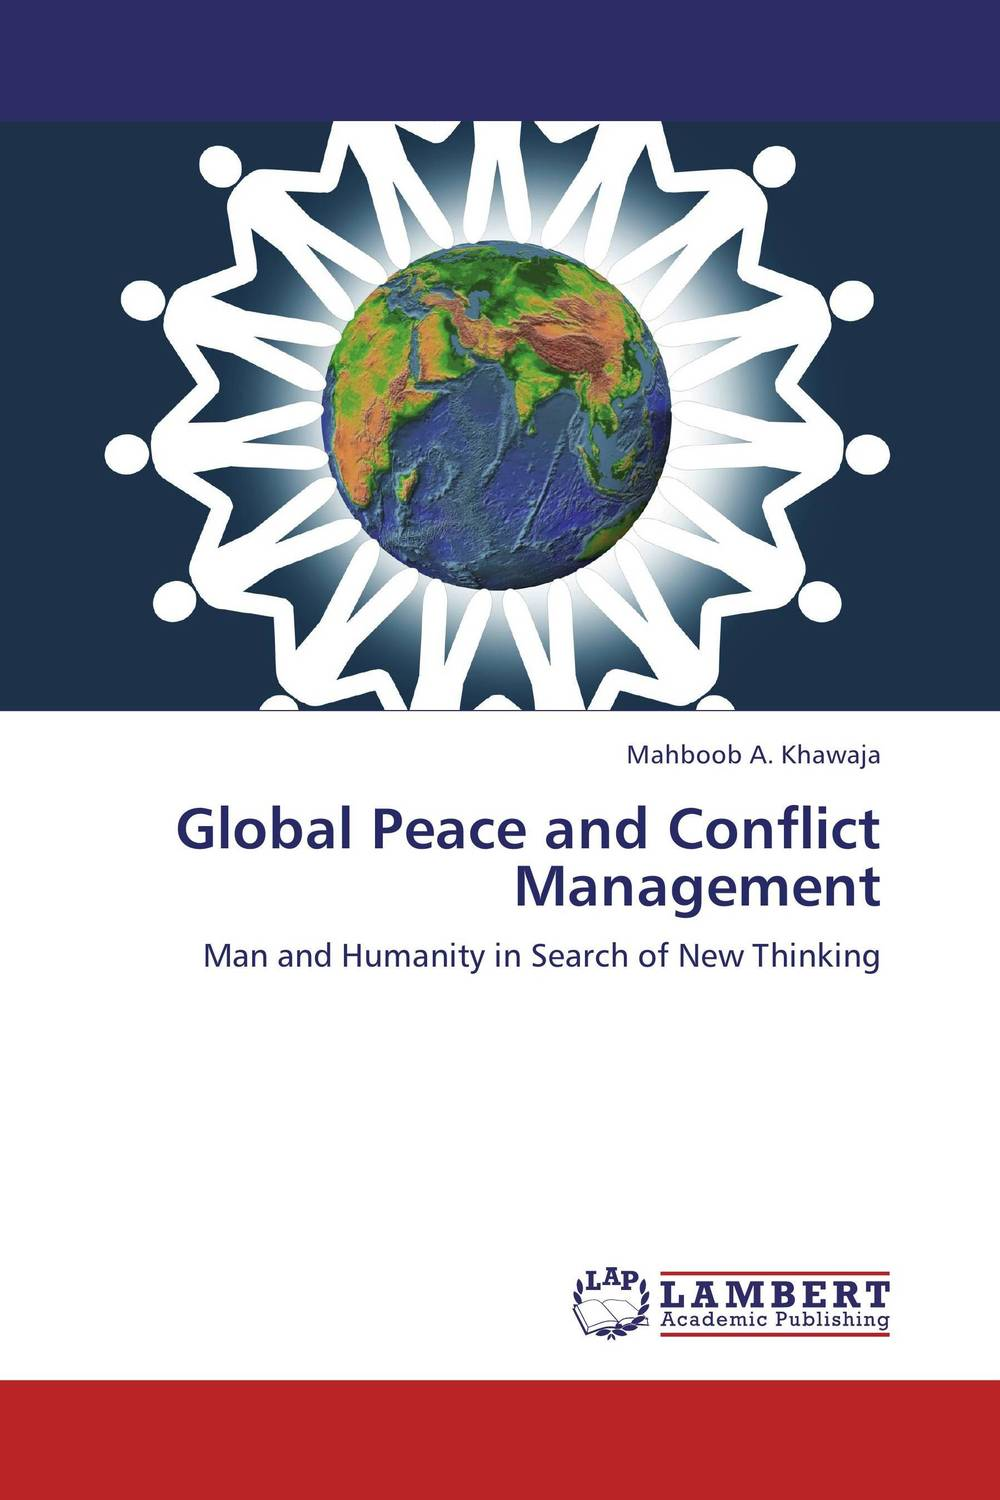 Global Peace and Conflict Management